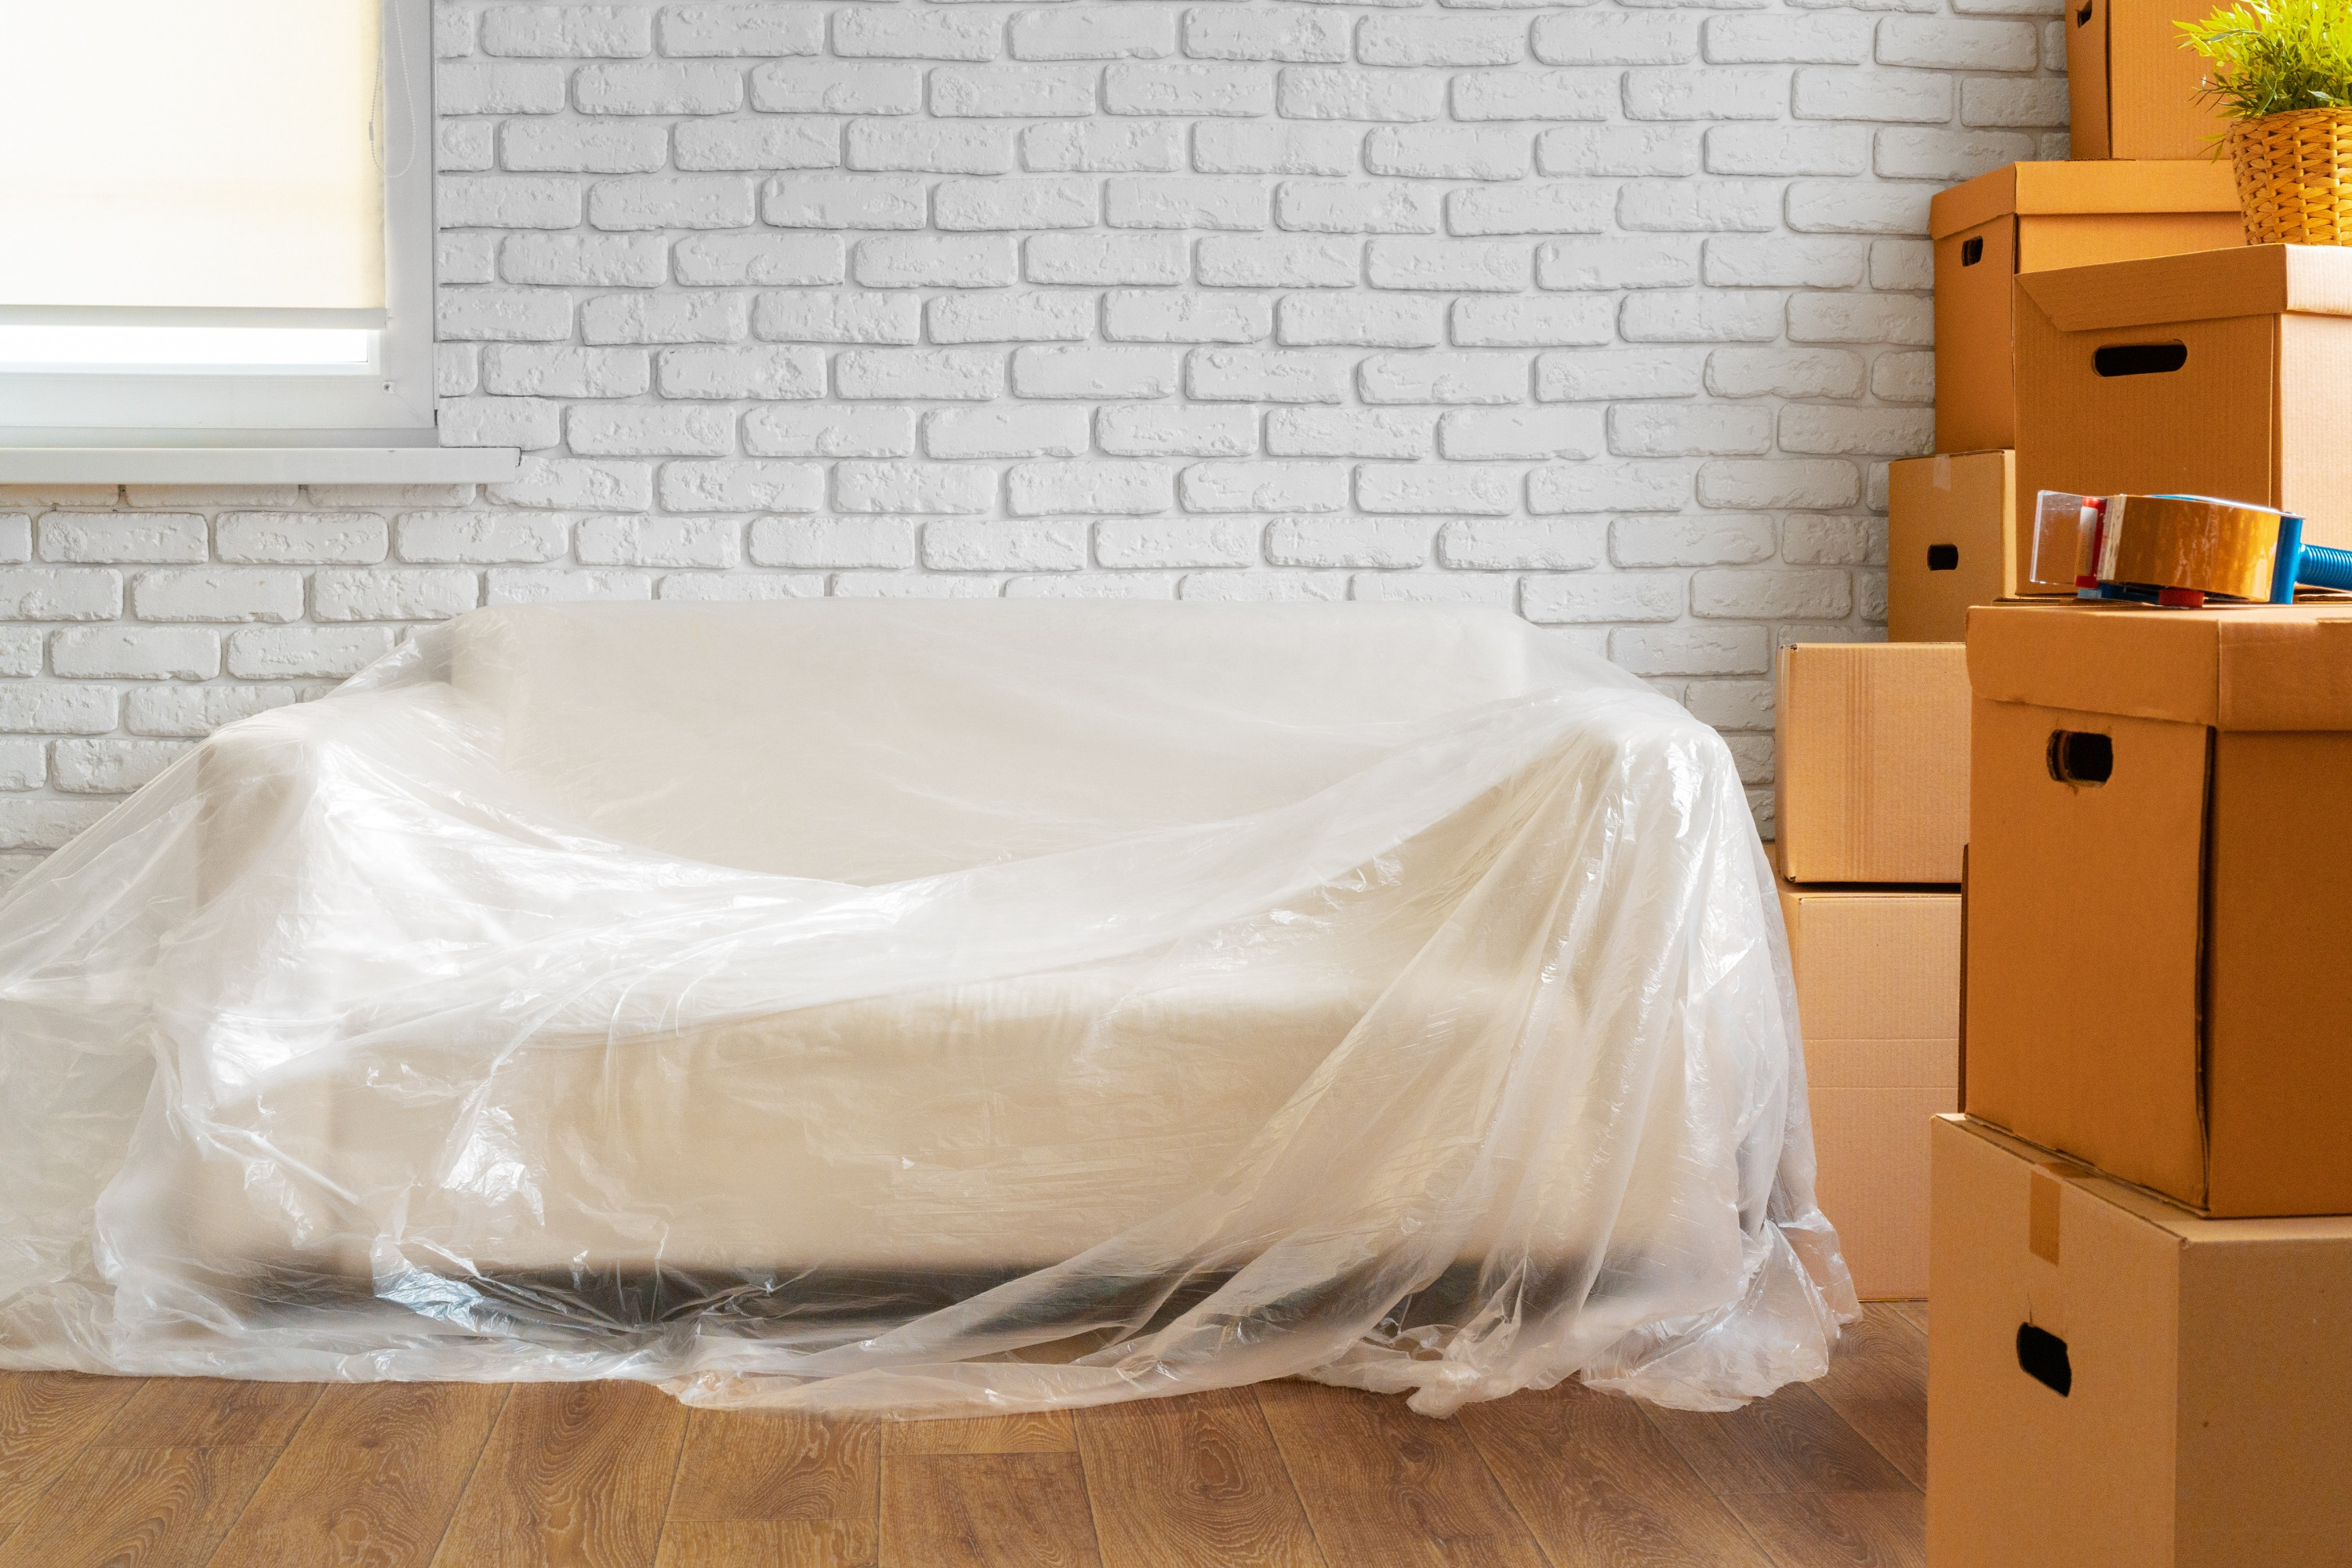 A white couch inside a home with clear wrapping over it, brown cardboard moving boxes, and packing tape.